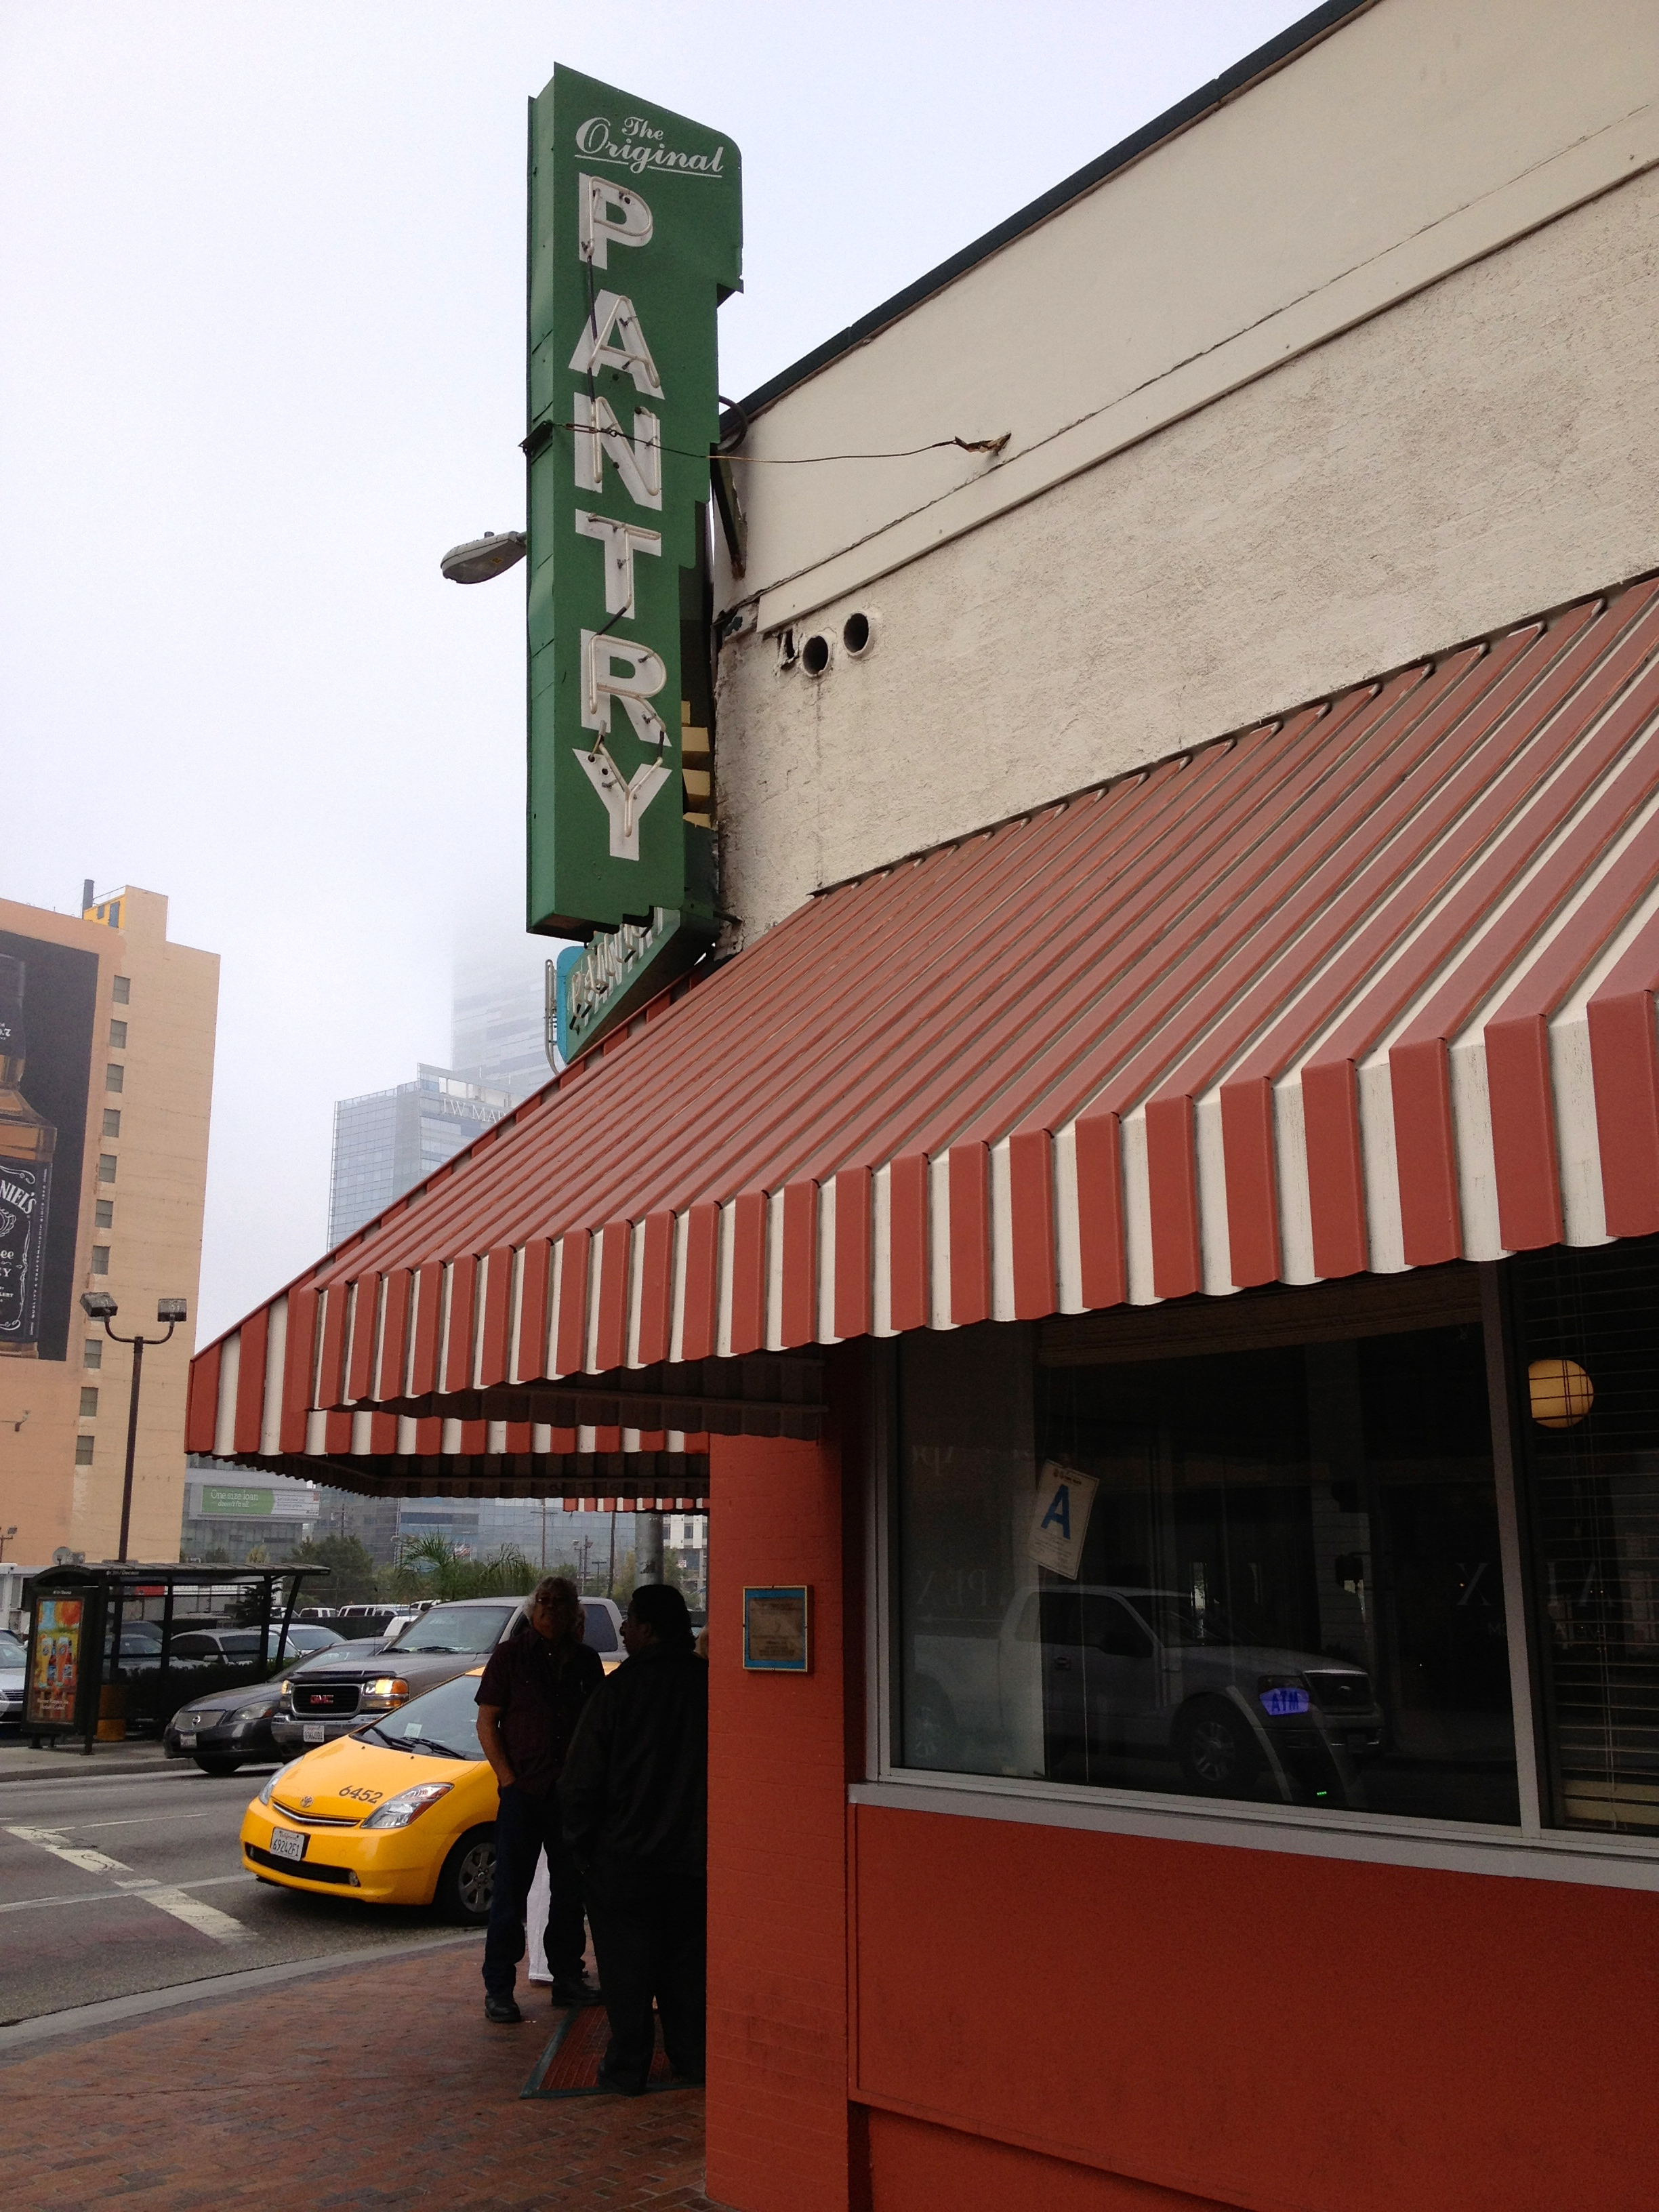 The Original Pantry Cafe has been open since 1924